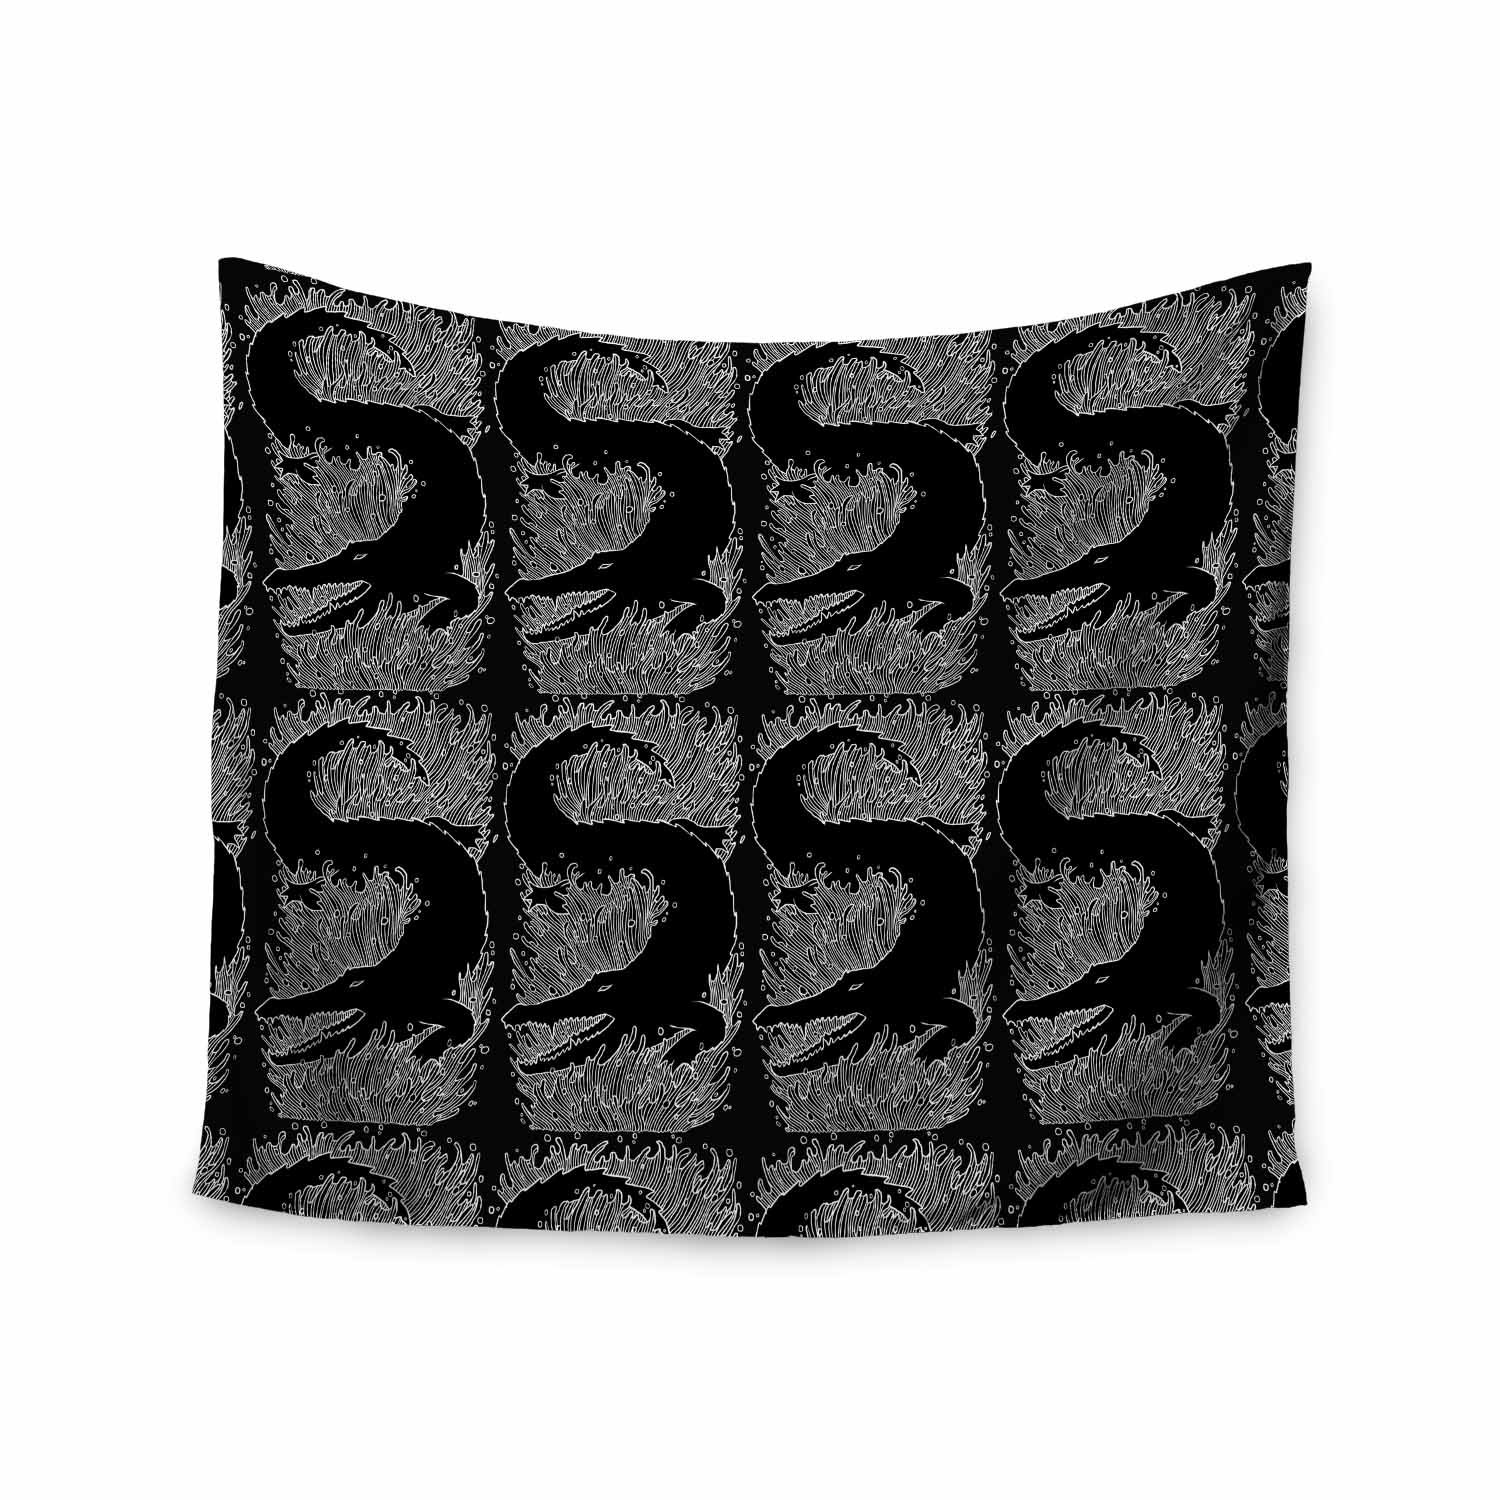 Kess InHouse BarmalisiRTB Crocodile Black White Digital, 68' x 80' Wall Tapestry